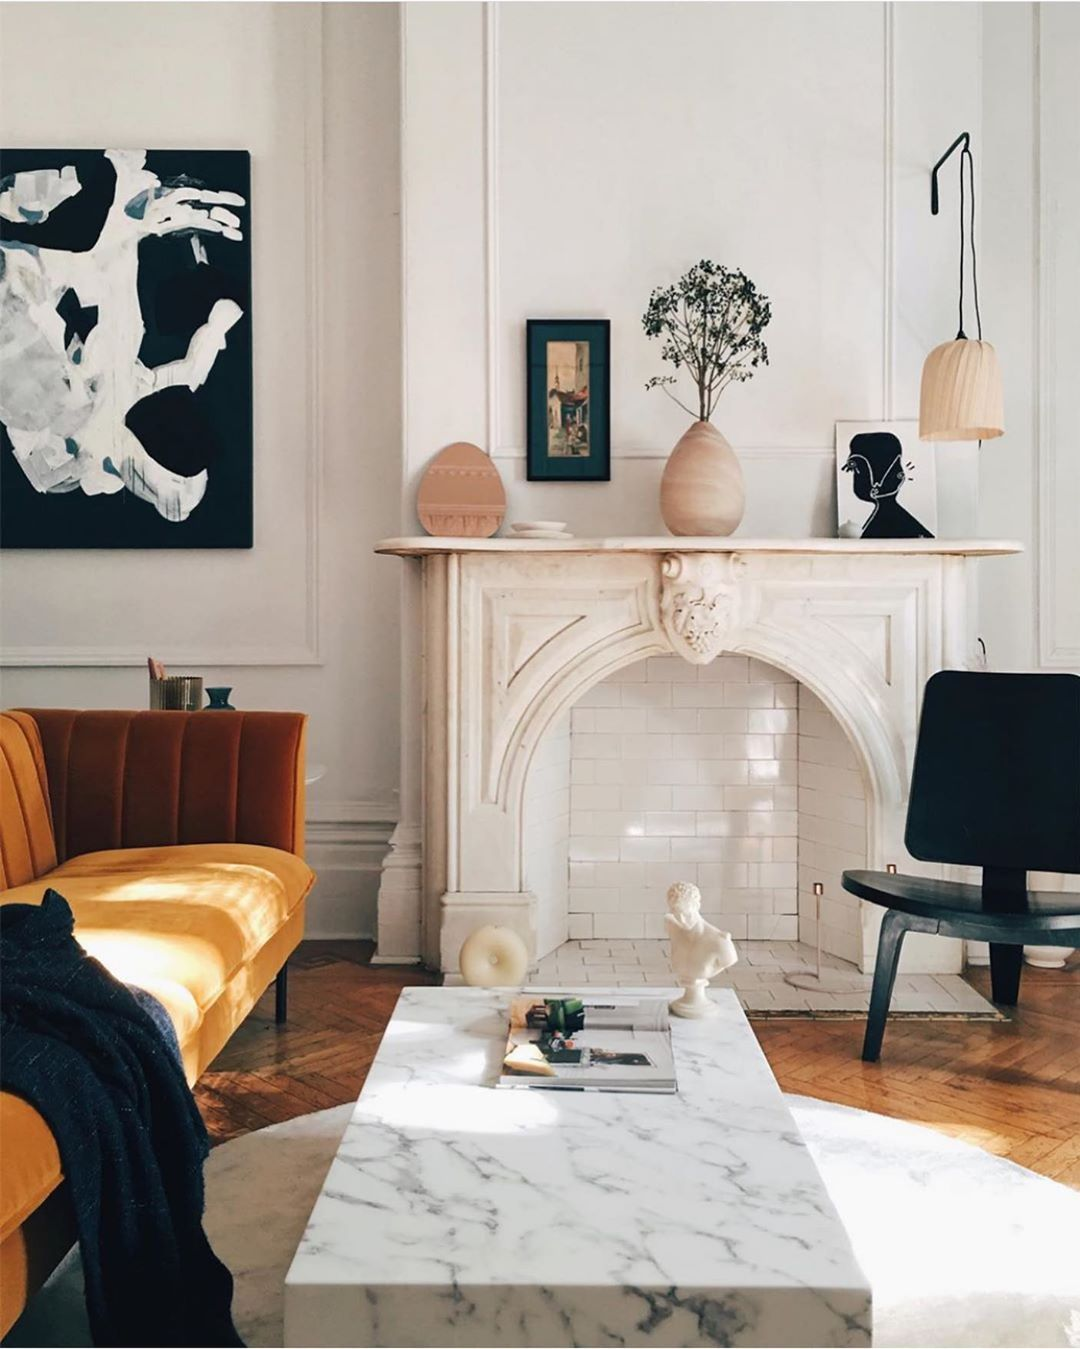 Ashley Stark Kenner On Instagram Loving The Touch Of Color Her Doesn T Seem Overwhelming But Adds So Much Living In 2020 Home Apartment Inspiration